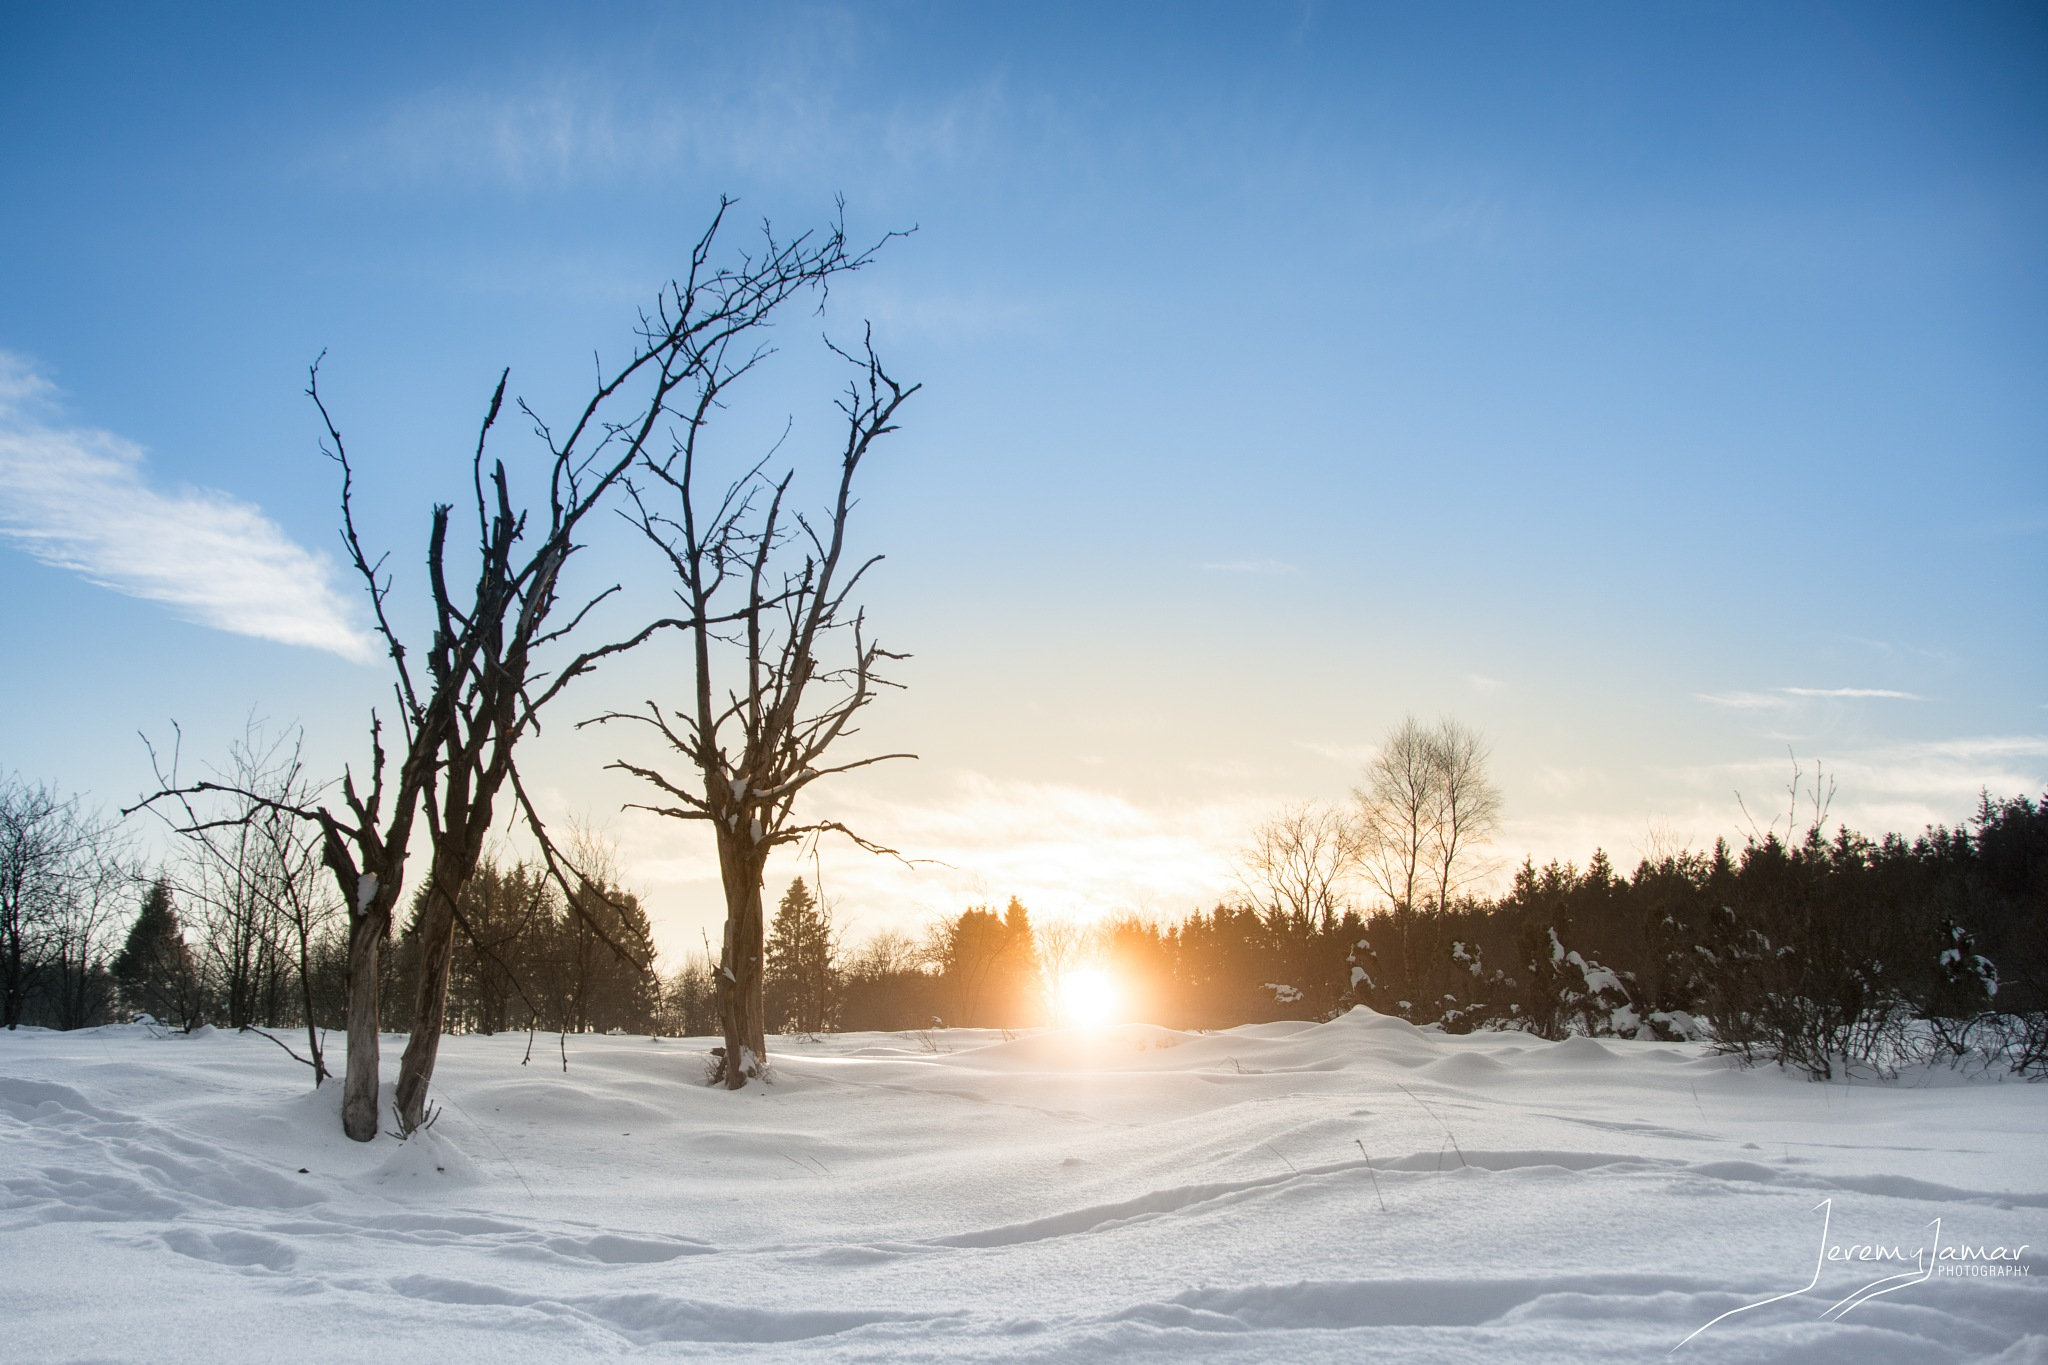 Sunset in a sea of snow by Jeremy Jamar